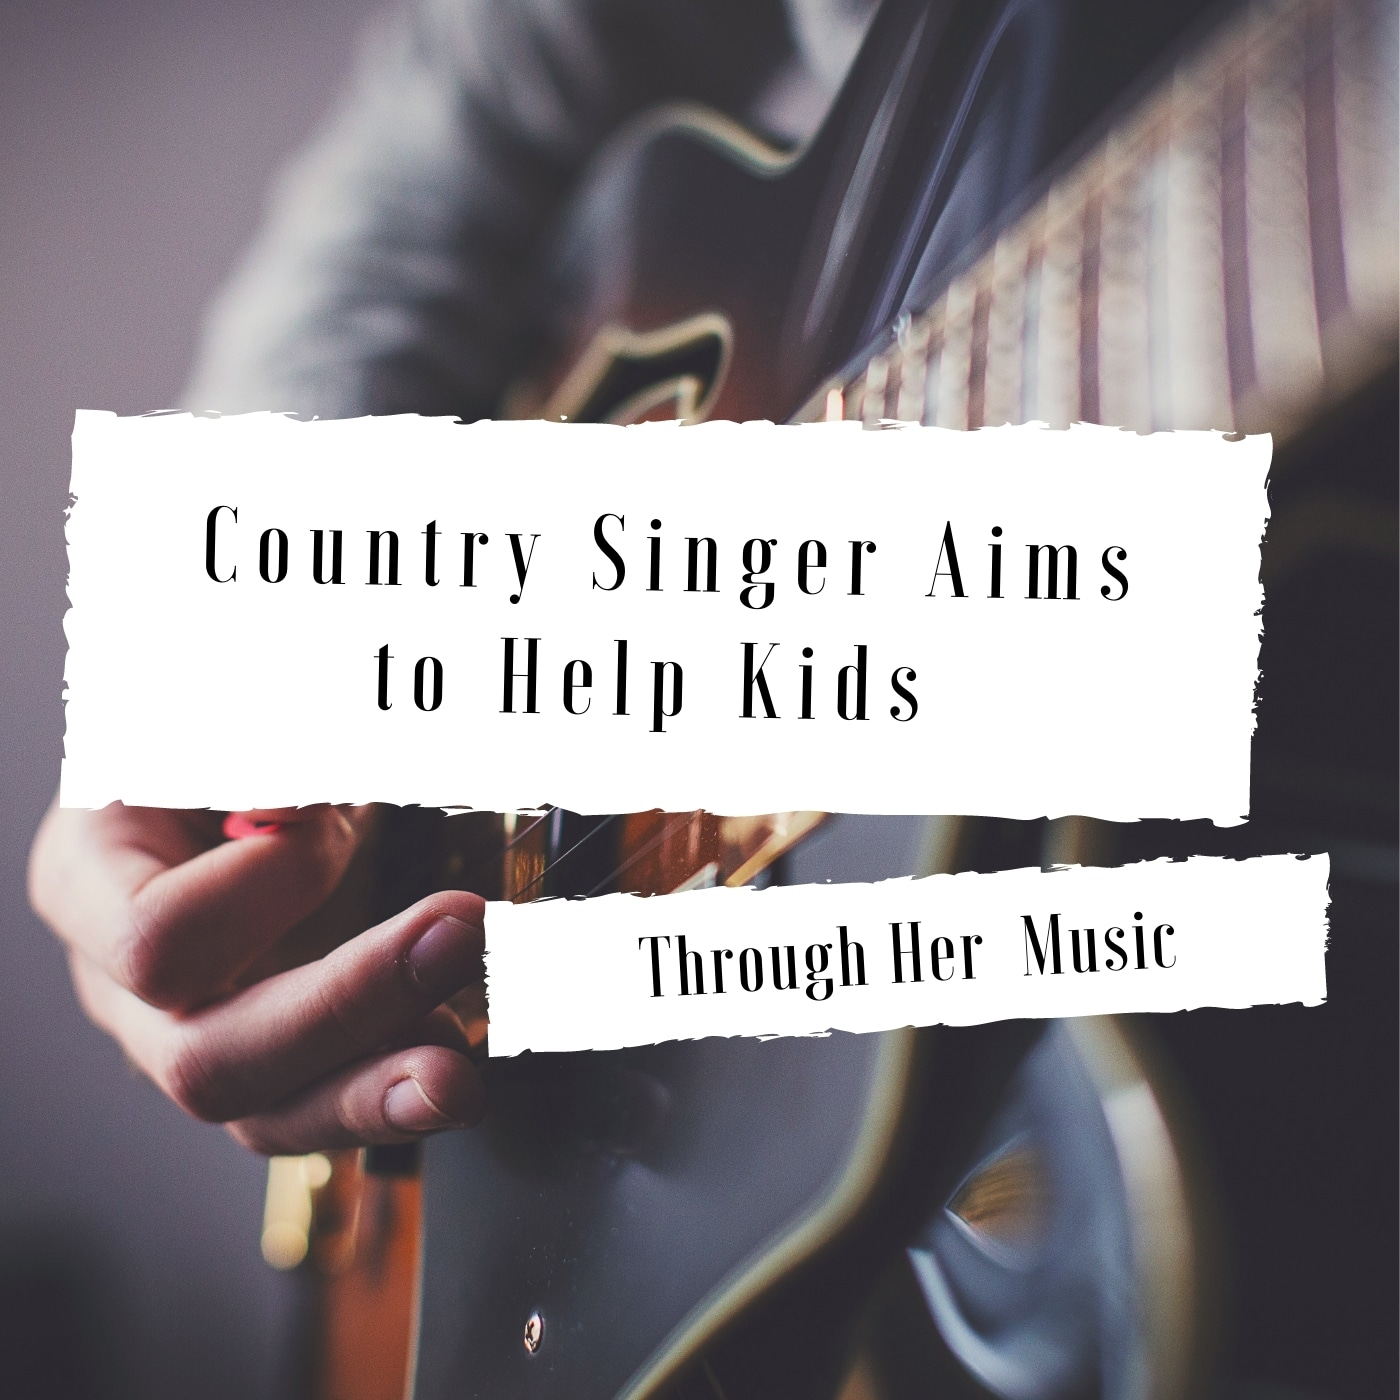 Country singer aims to help kids through her music